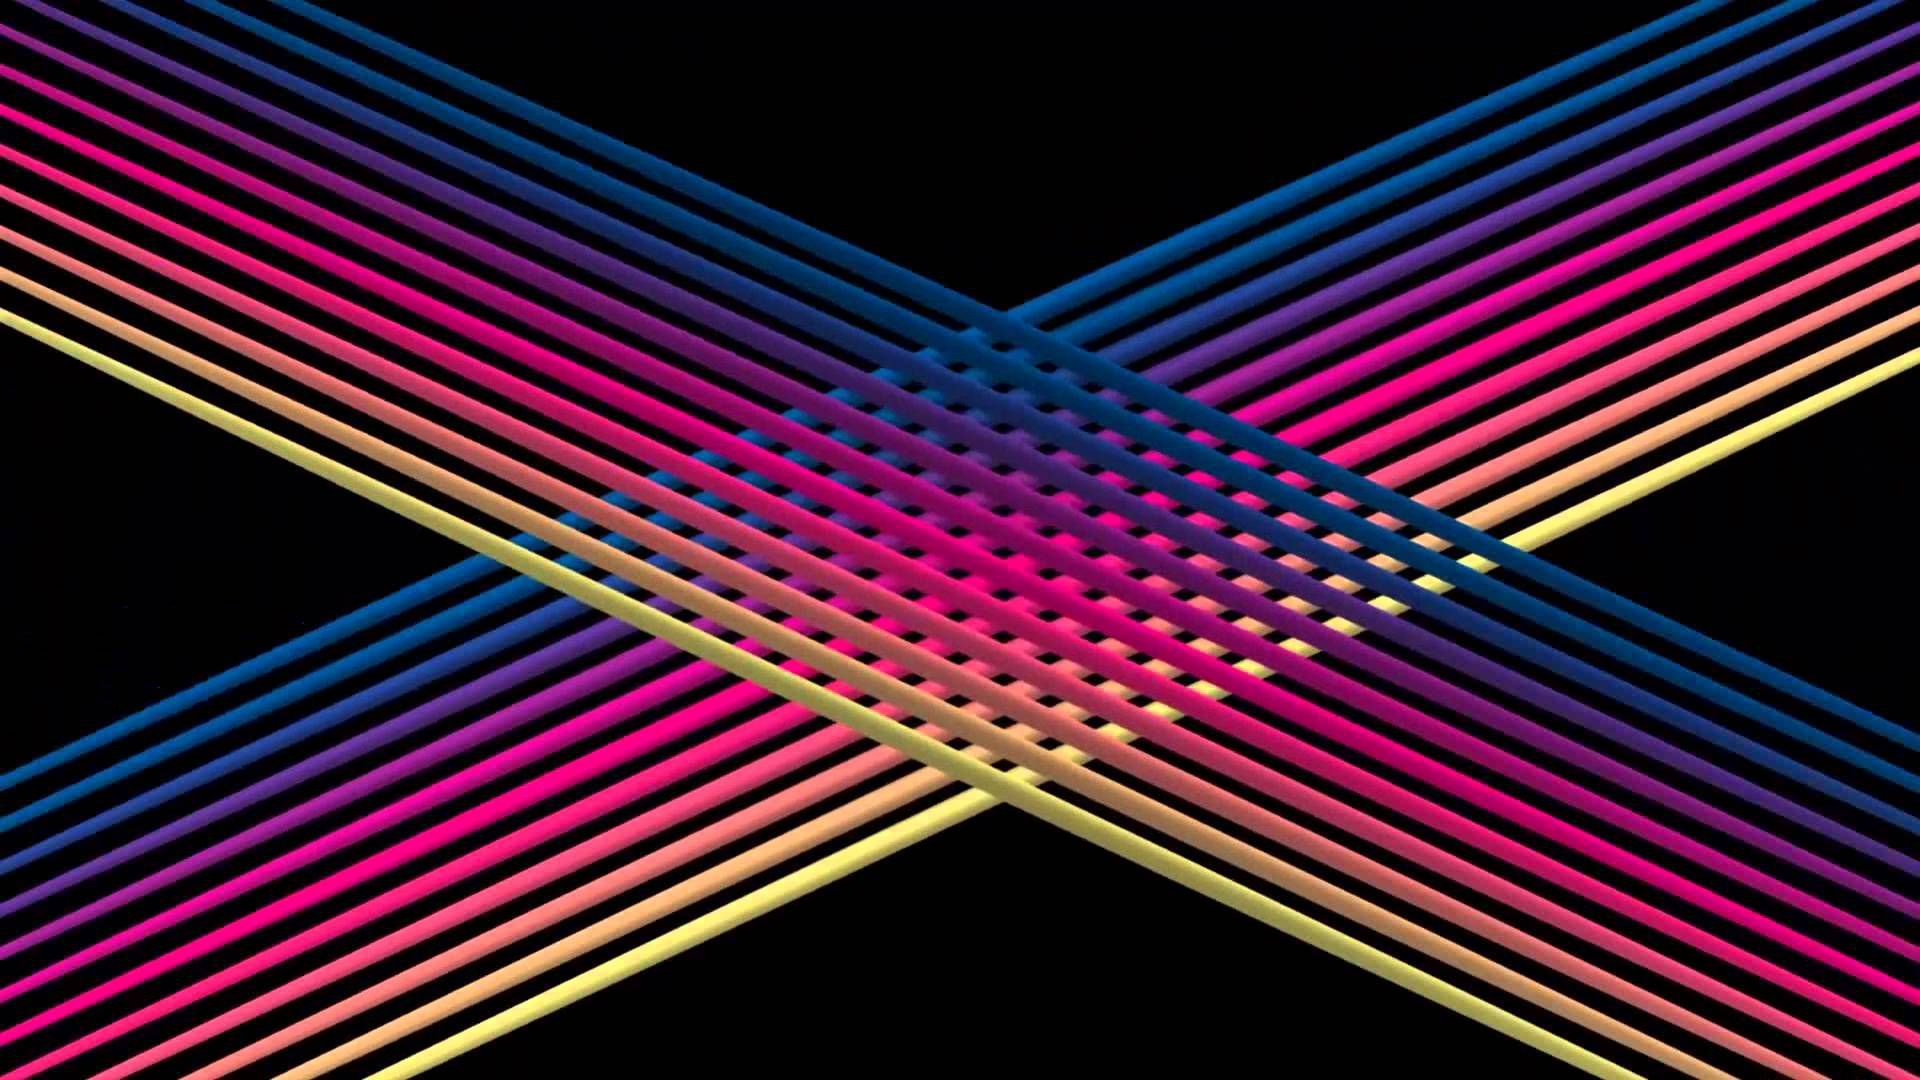 Graphic Wallpapers Colorful Xes